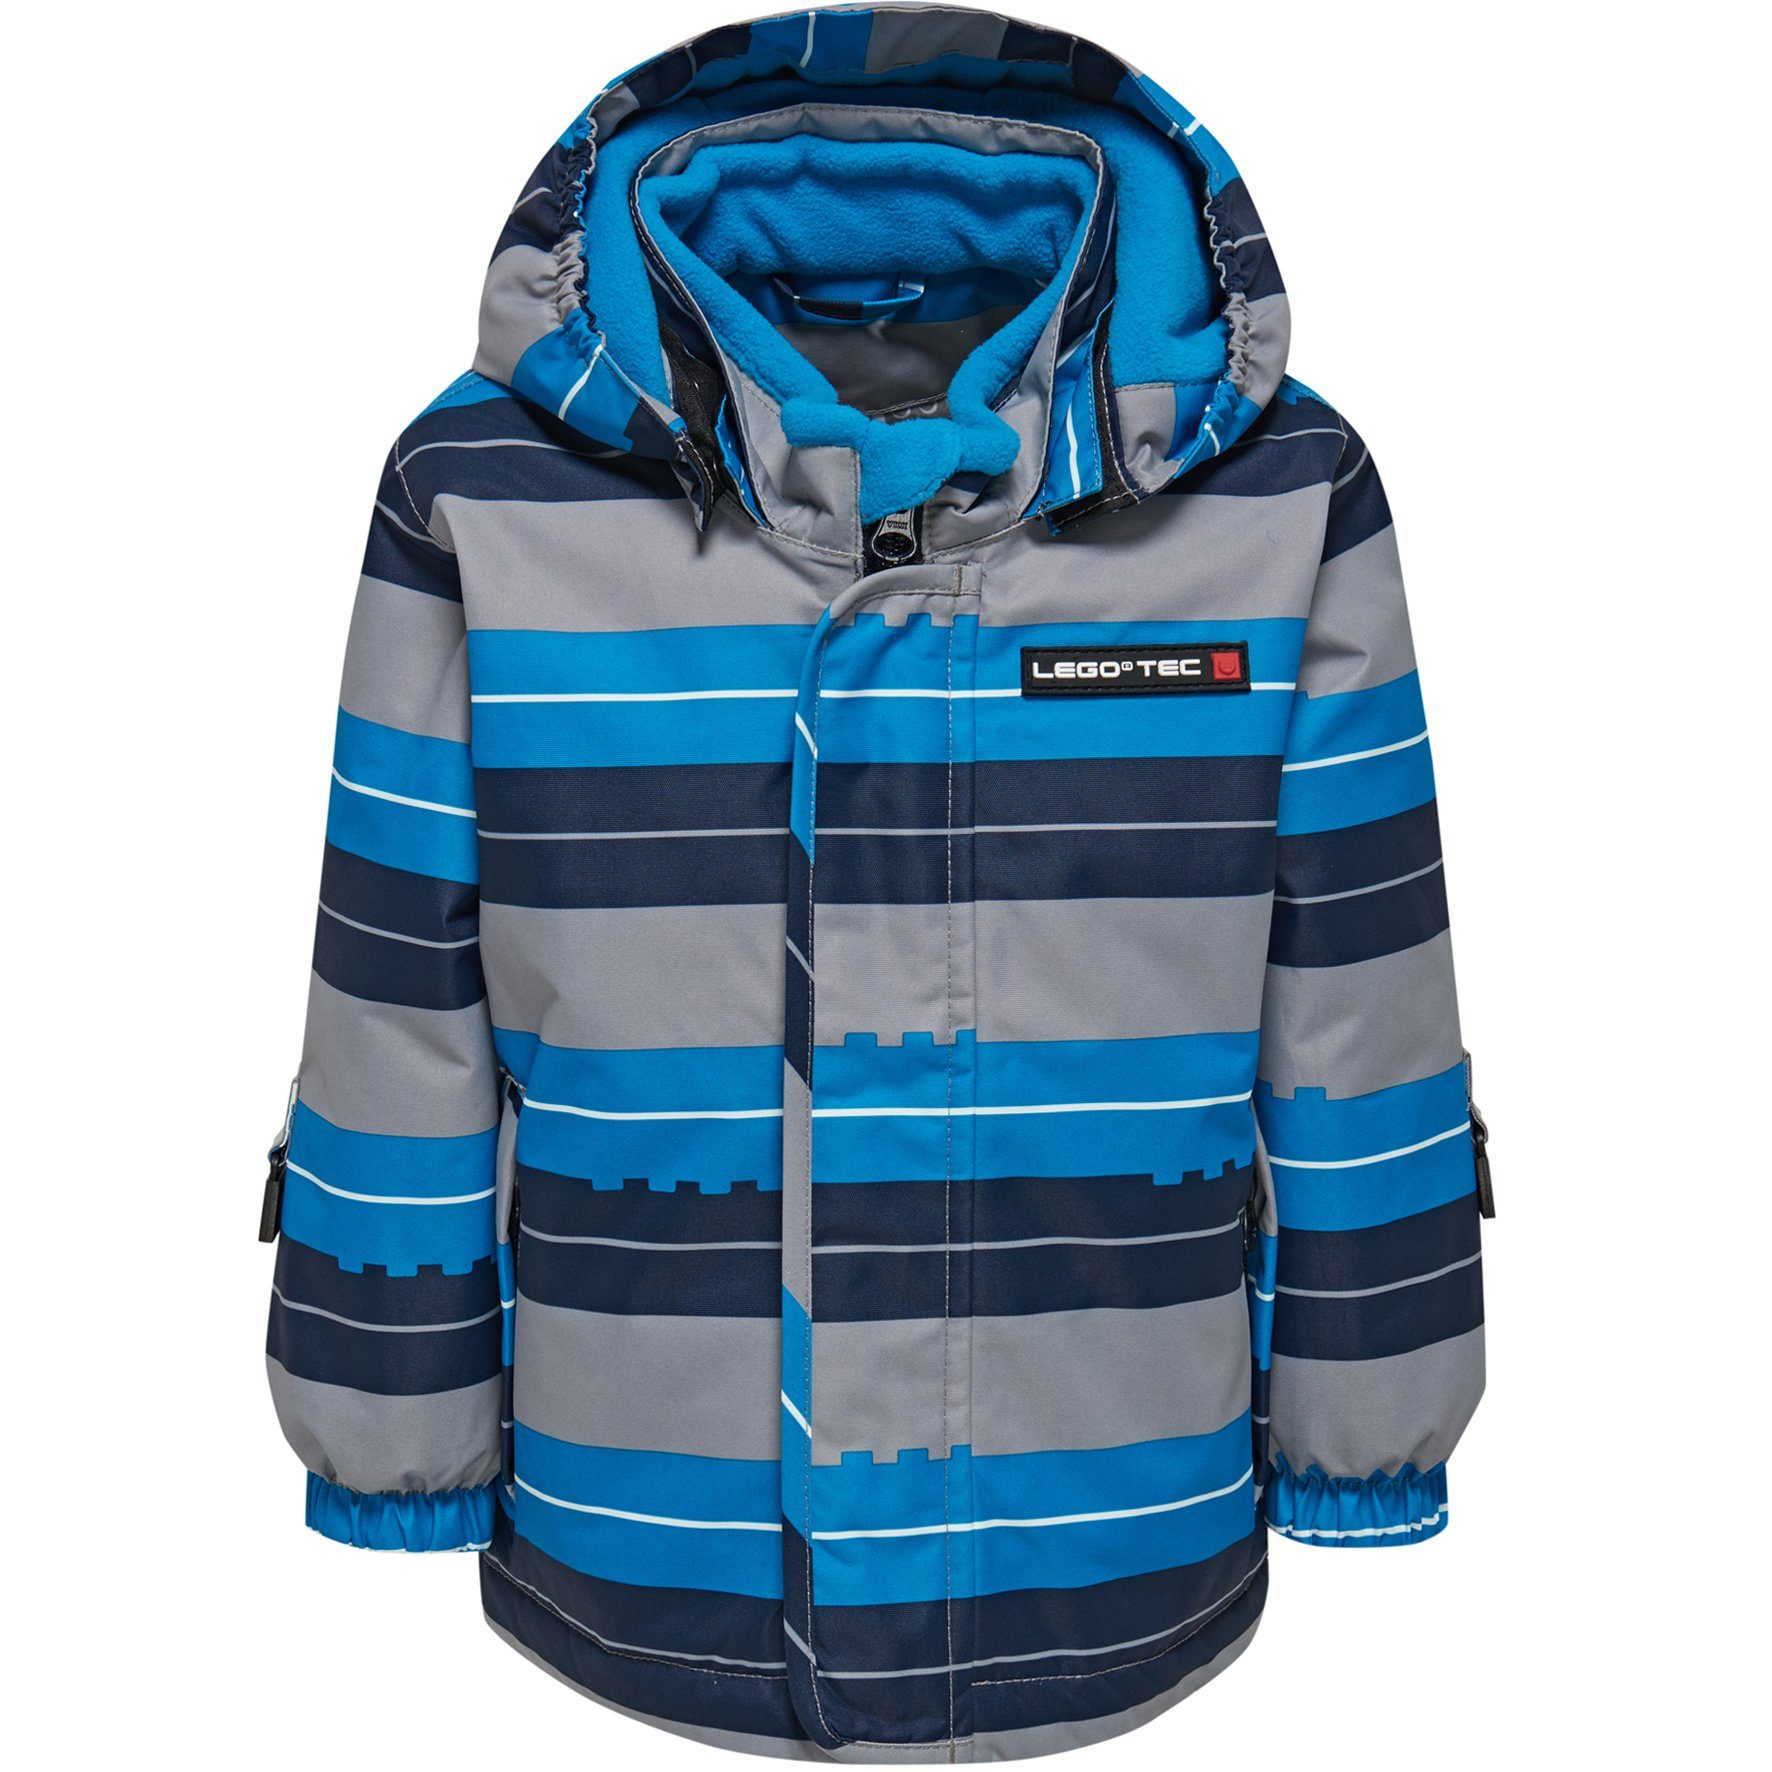 LEGO Wear Winterjacke Jaxon 774